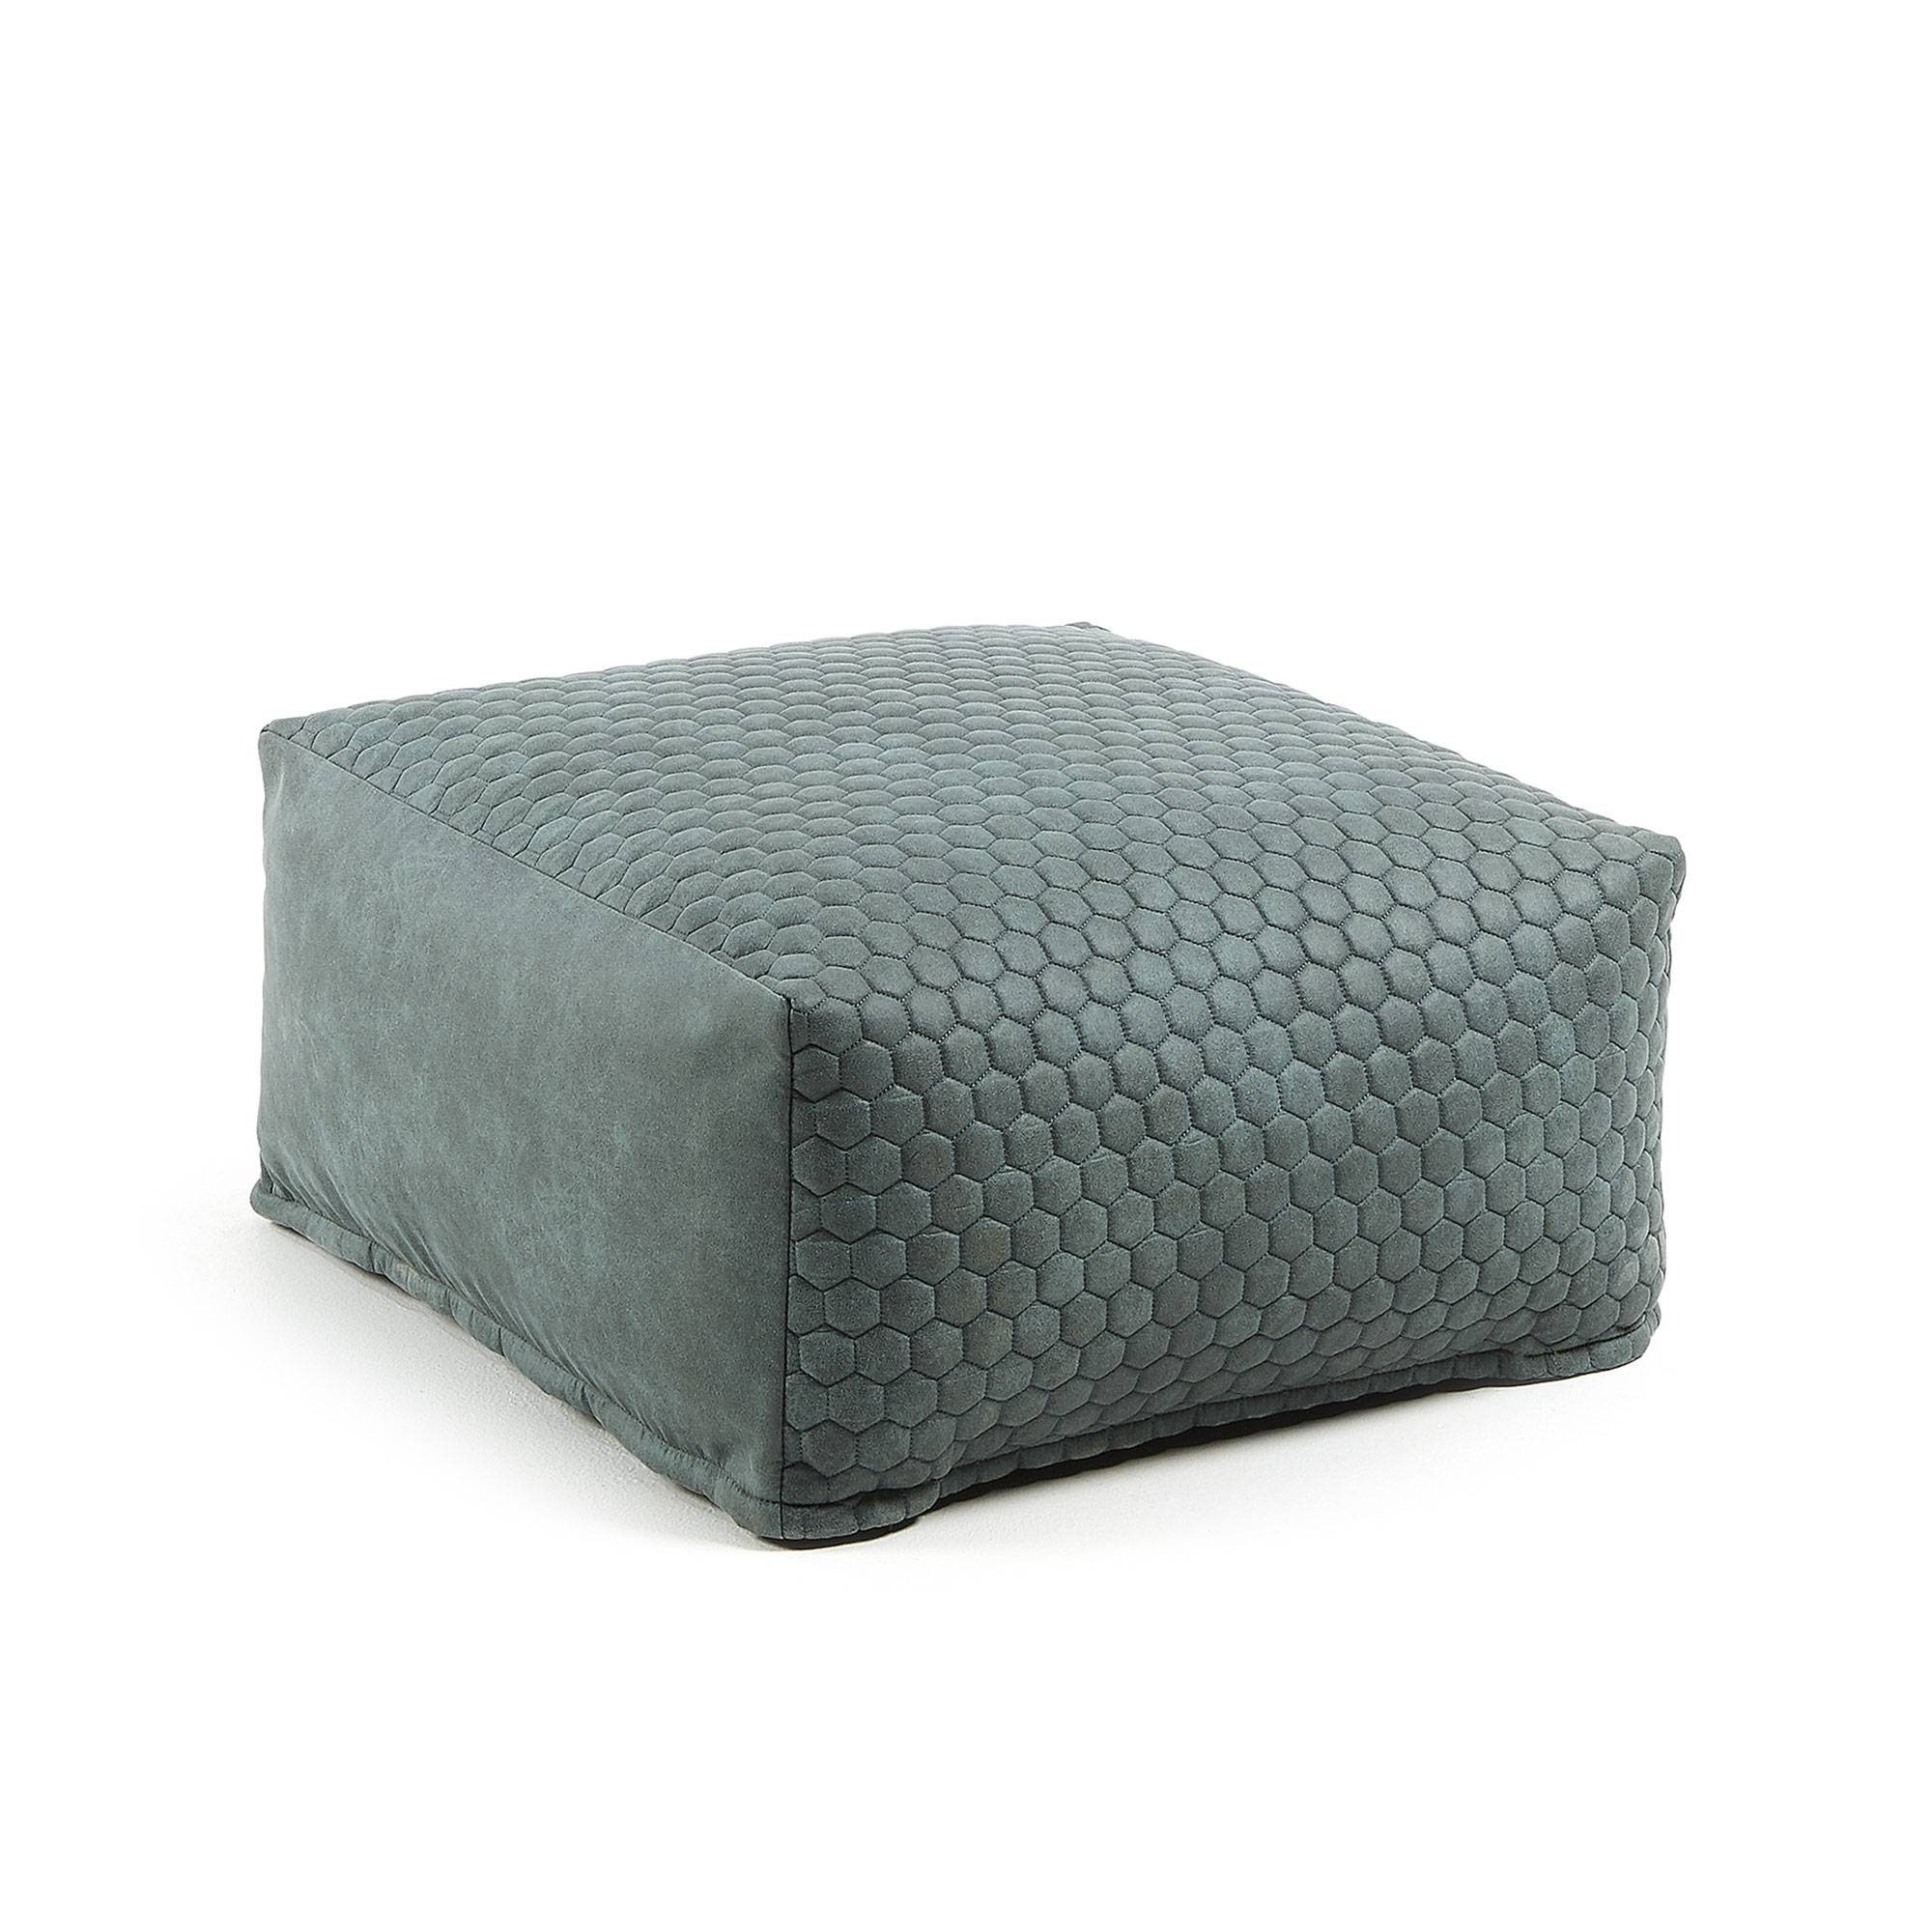 Kave Home Pouf Indam 60 x 60 cm turchese